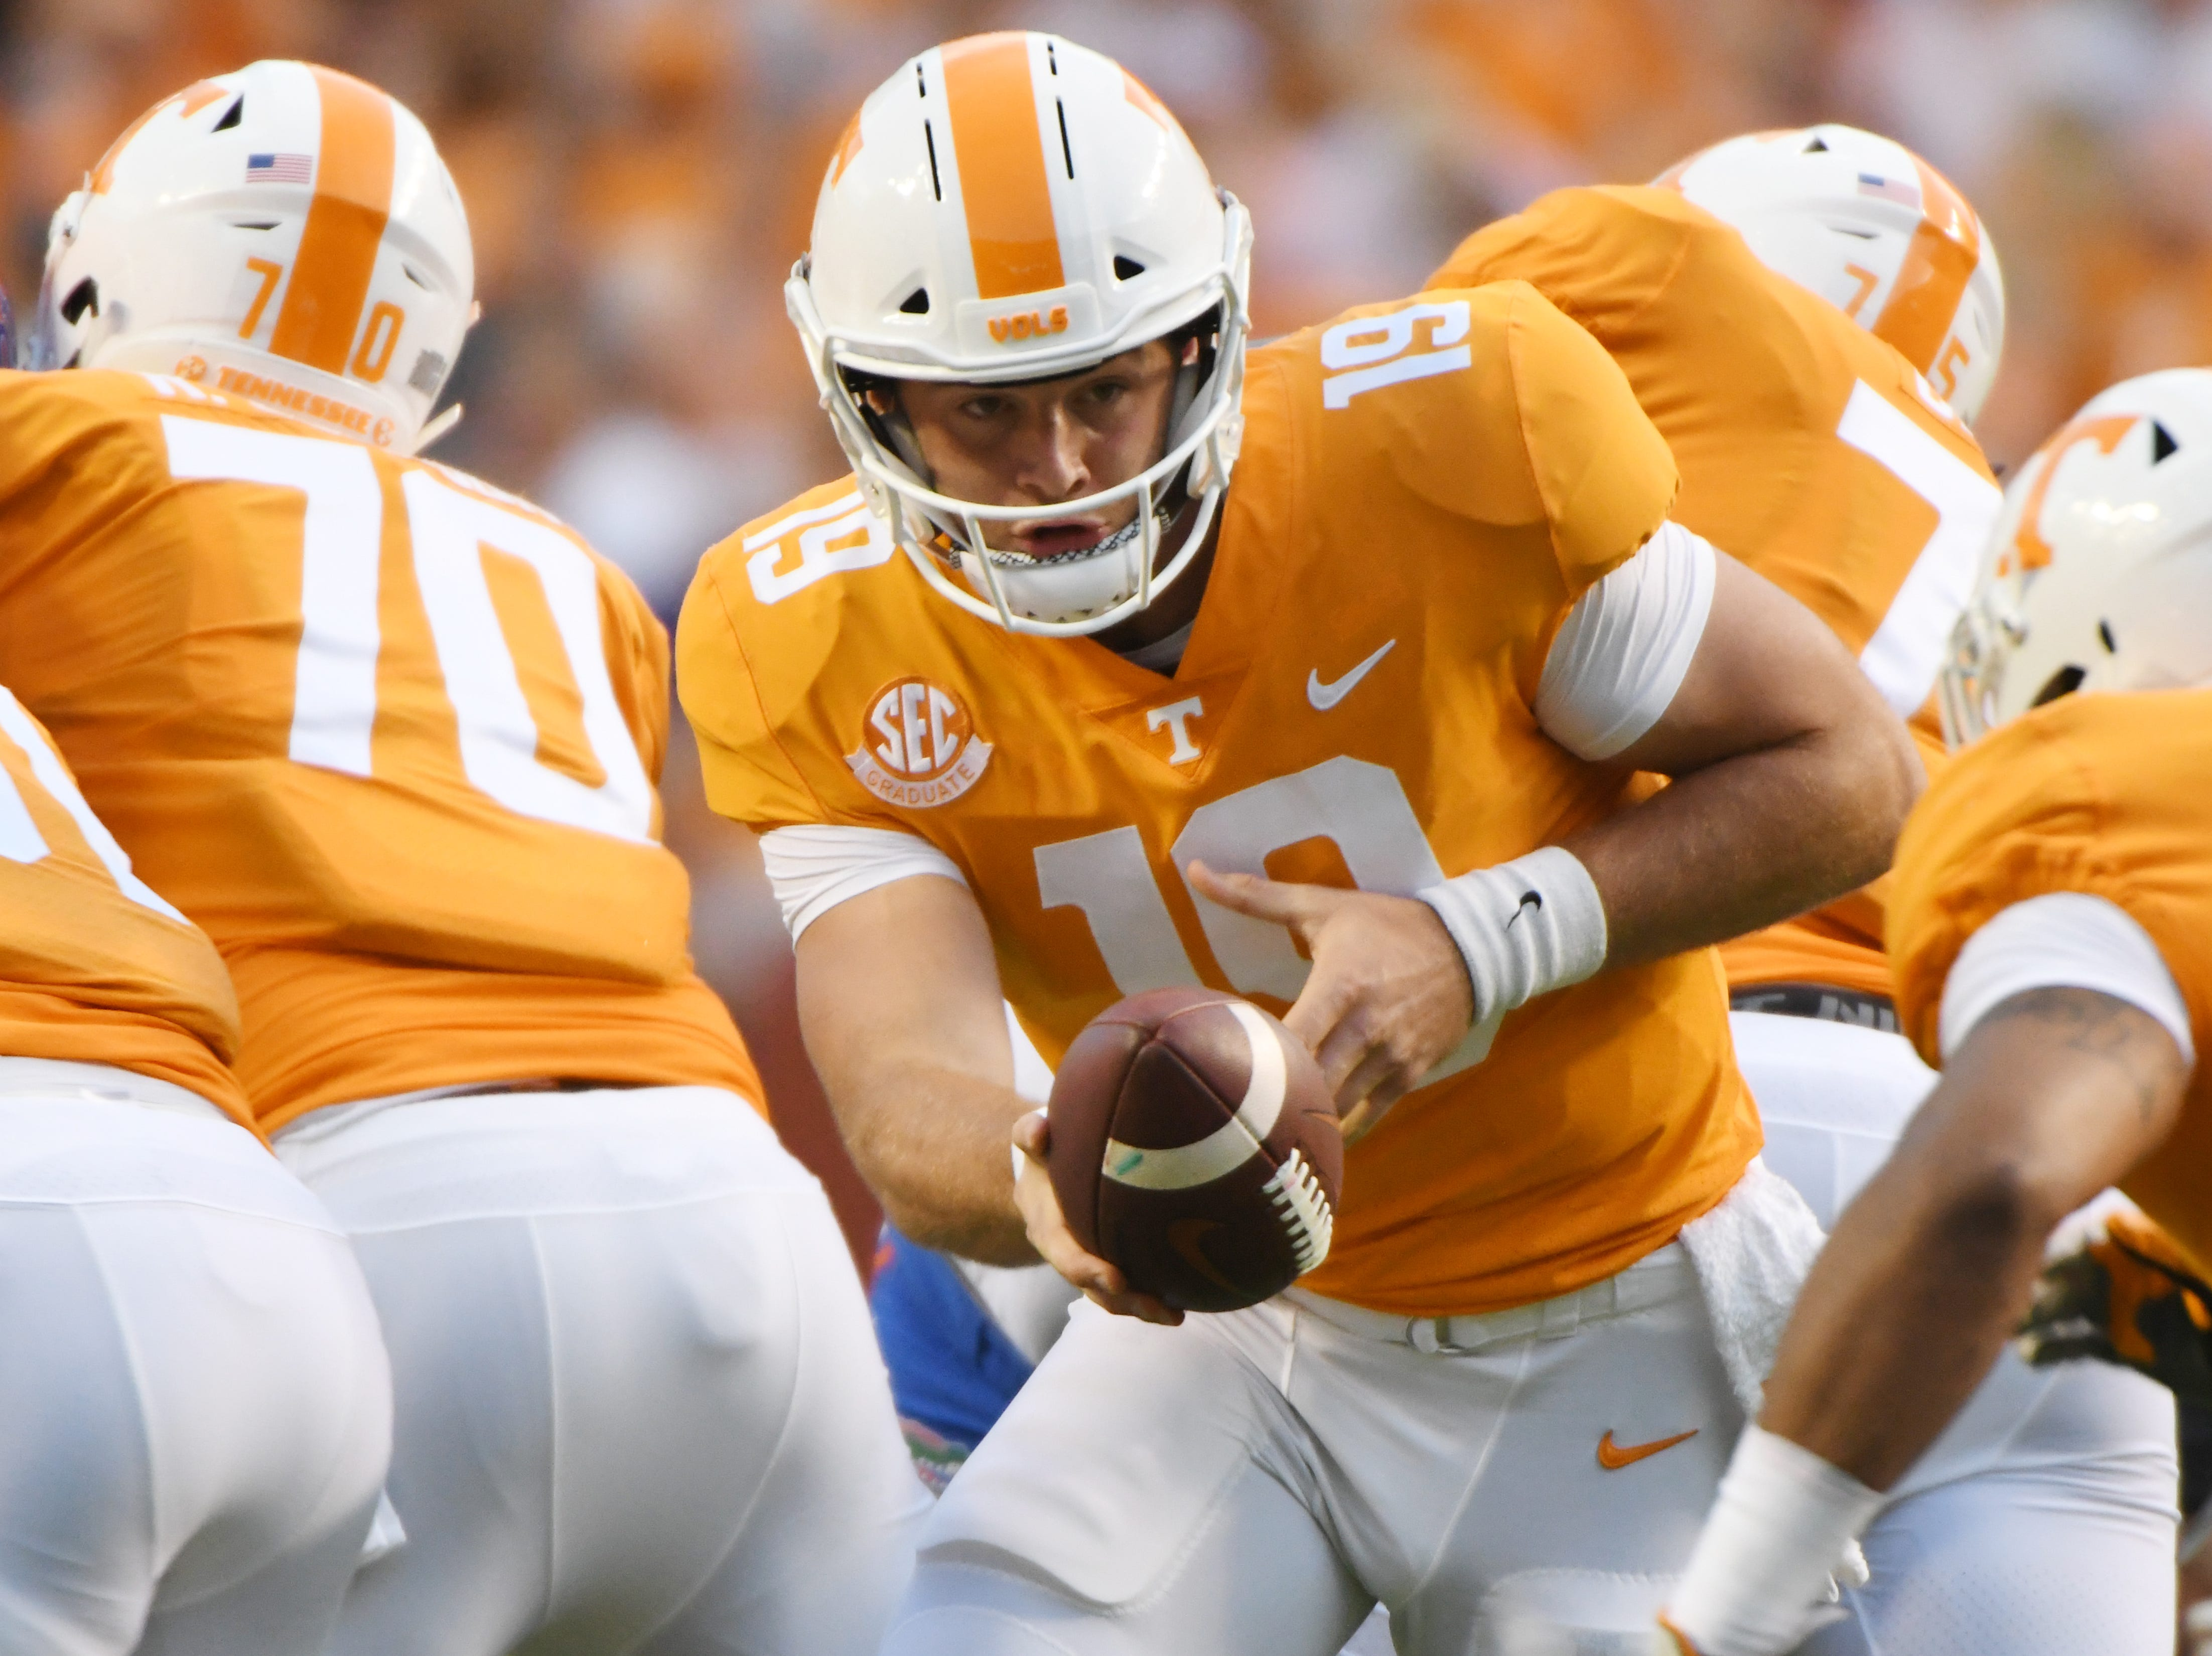 Tennessee quarterback Keller Chryst (19) hands off the ball during a game between Tennessee and Florida at Neyland Stadium in Knoxville, Tennessee on Saturday, September 22, 2018.